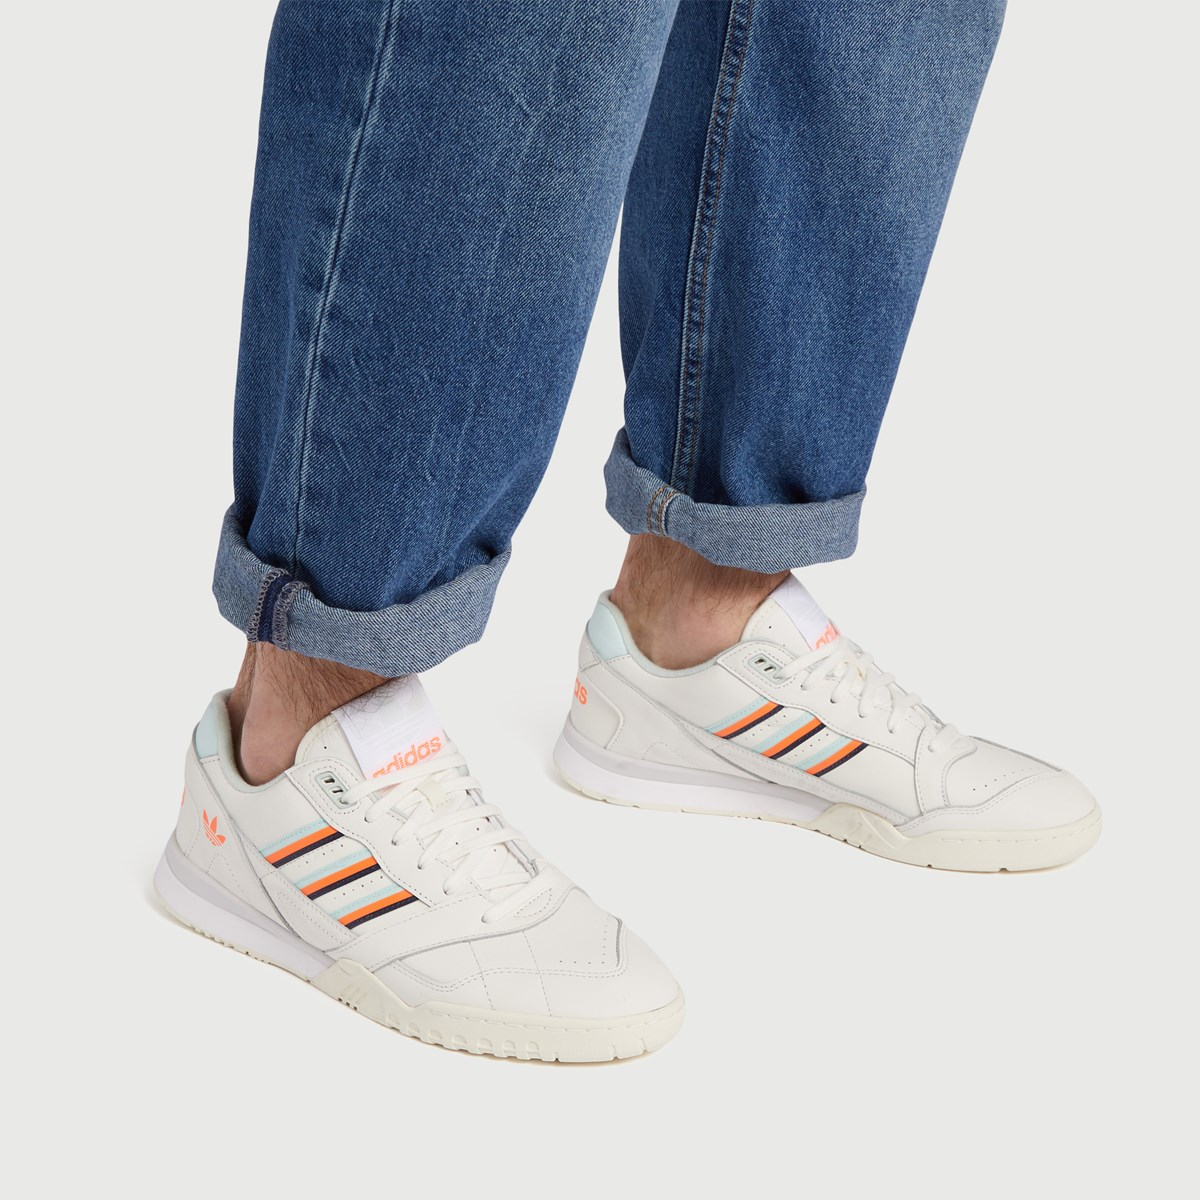 Baskets AR Trainer blanches pour hommes